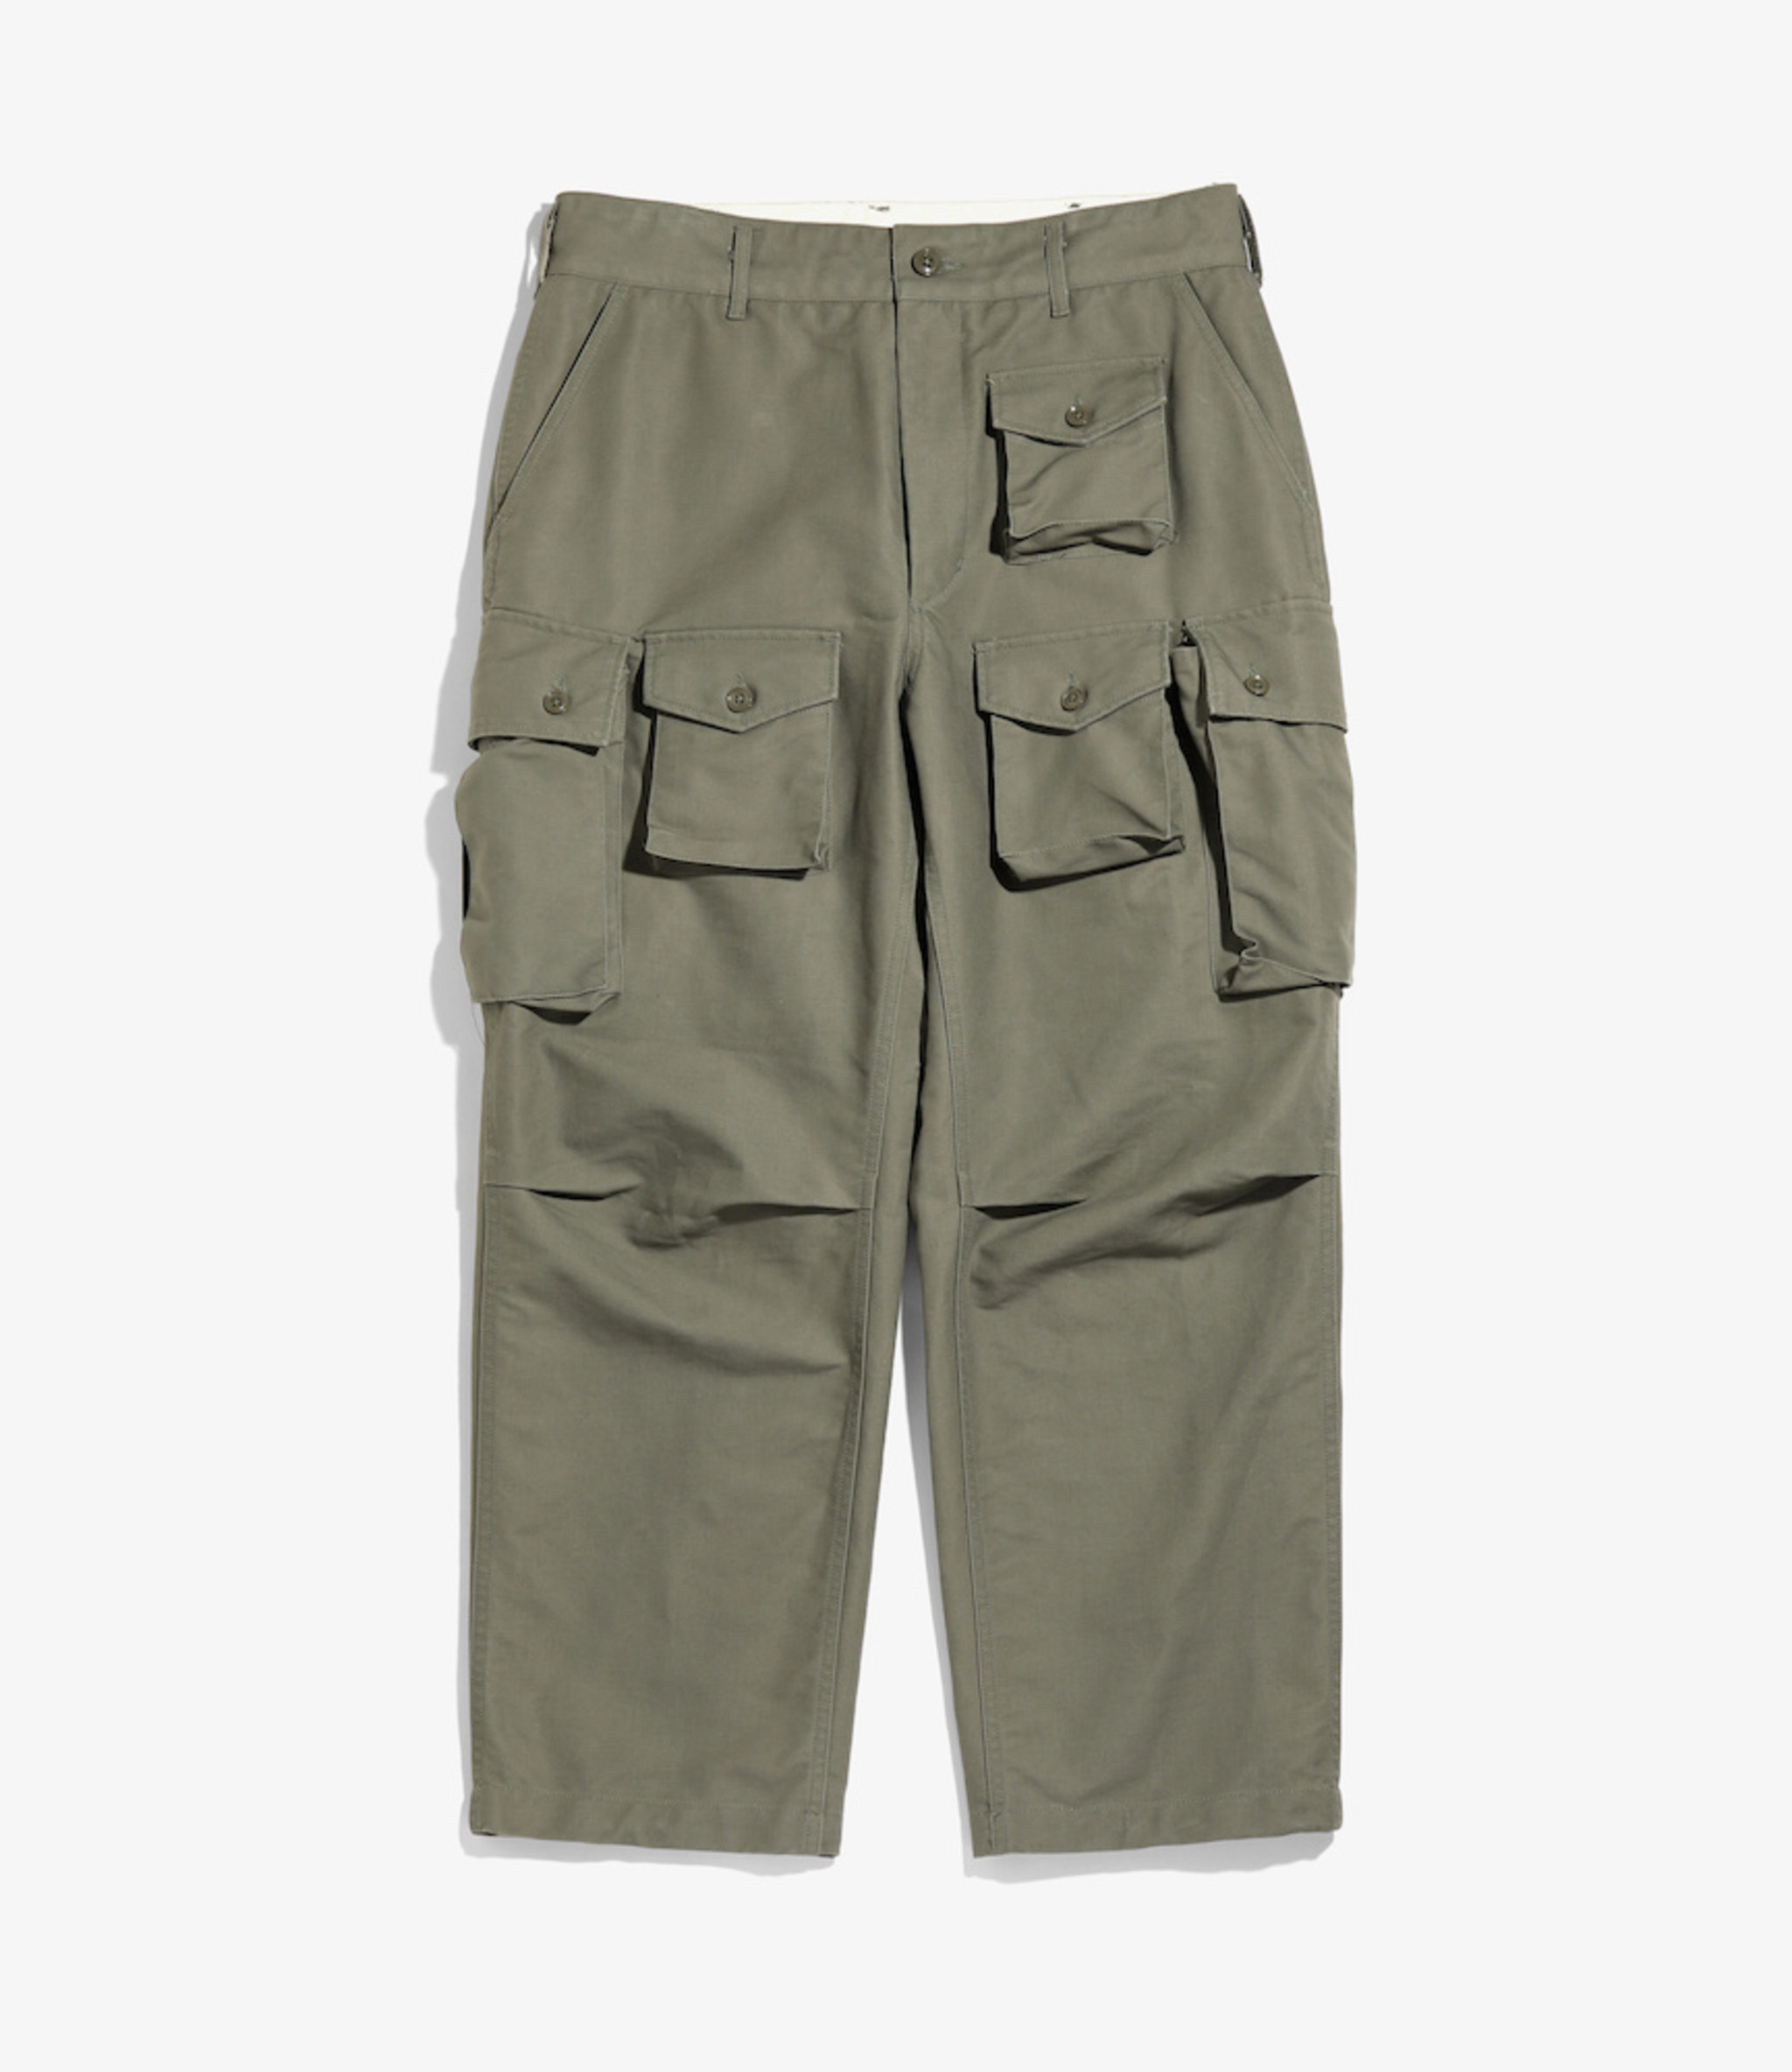 Engineered Garments FA Pant - Olive Cotton Double Cloth